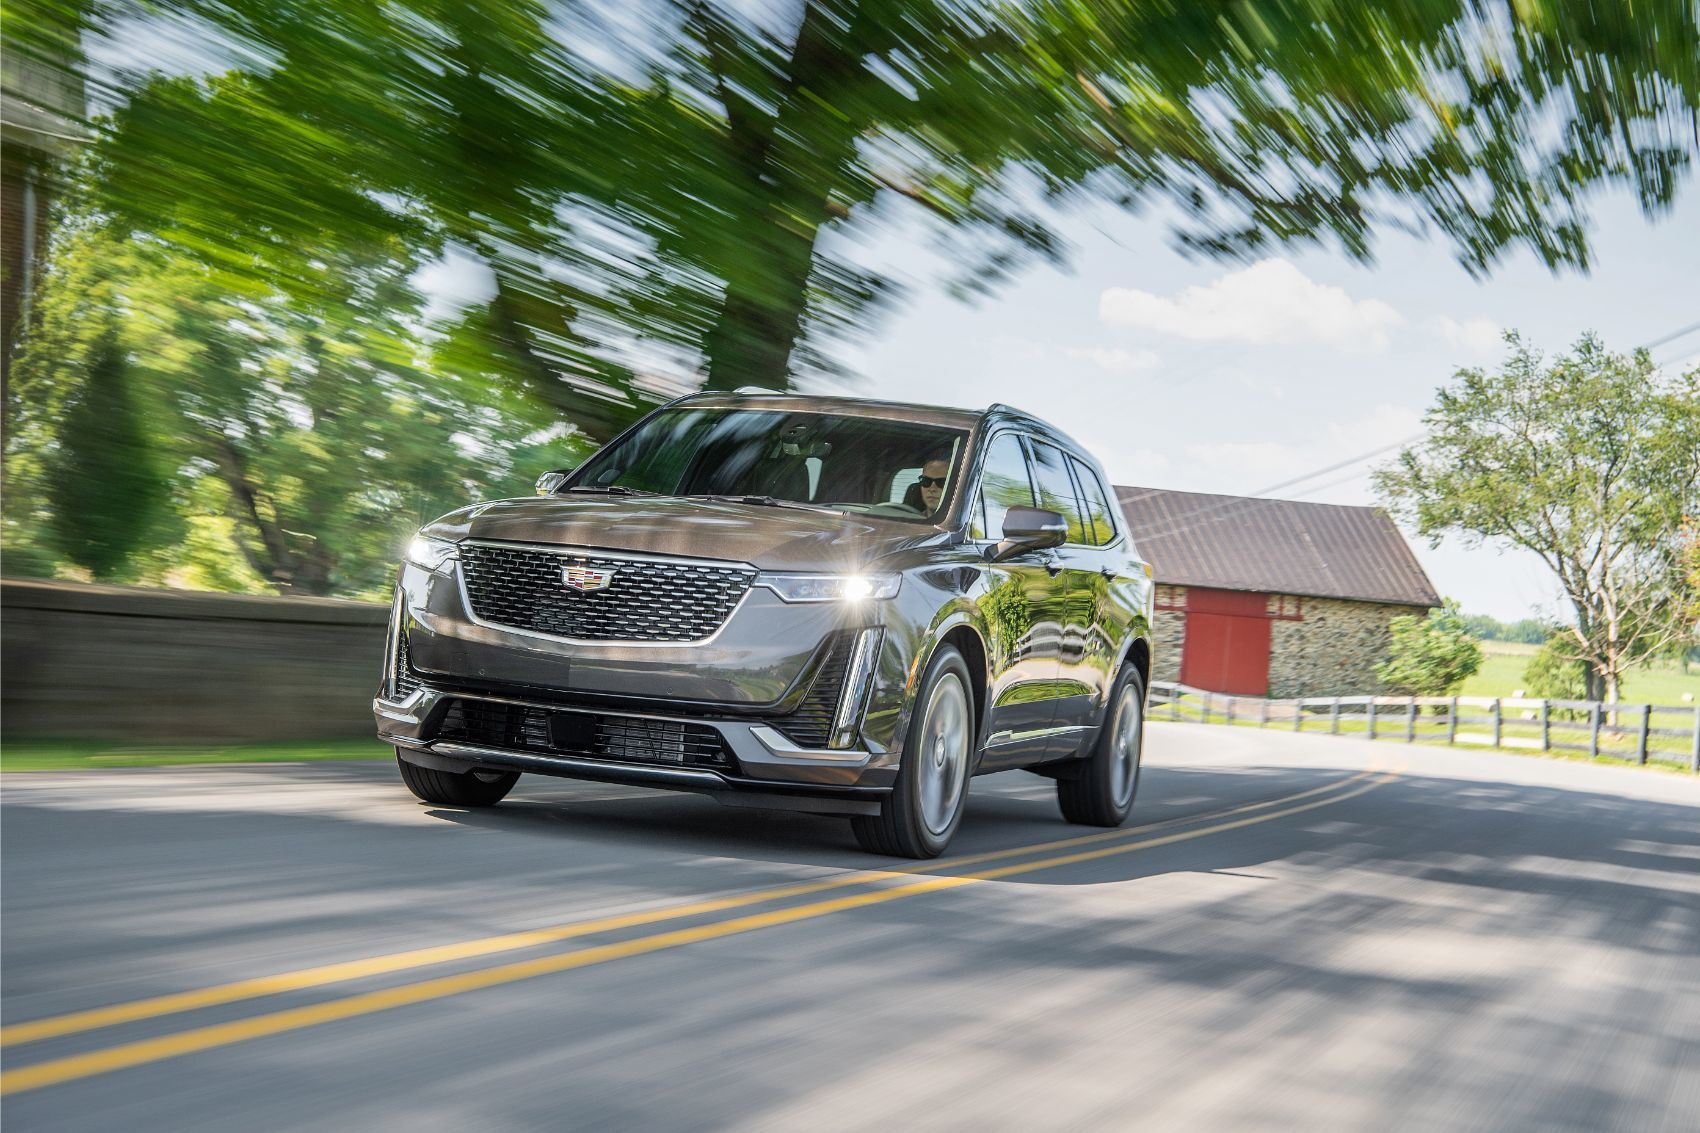 2020 Cadillac XT6 Review: Better Than The Escalade? We Think So